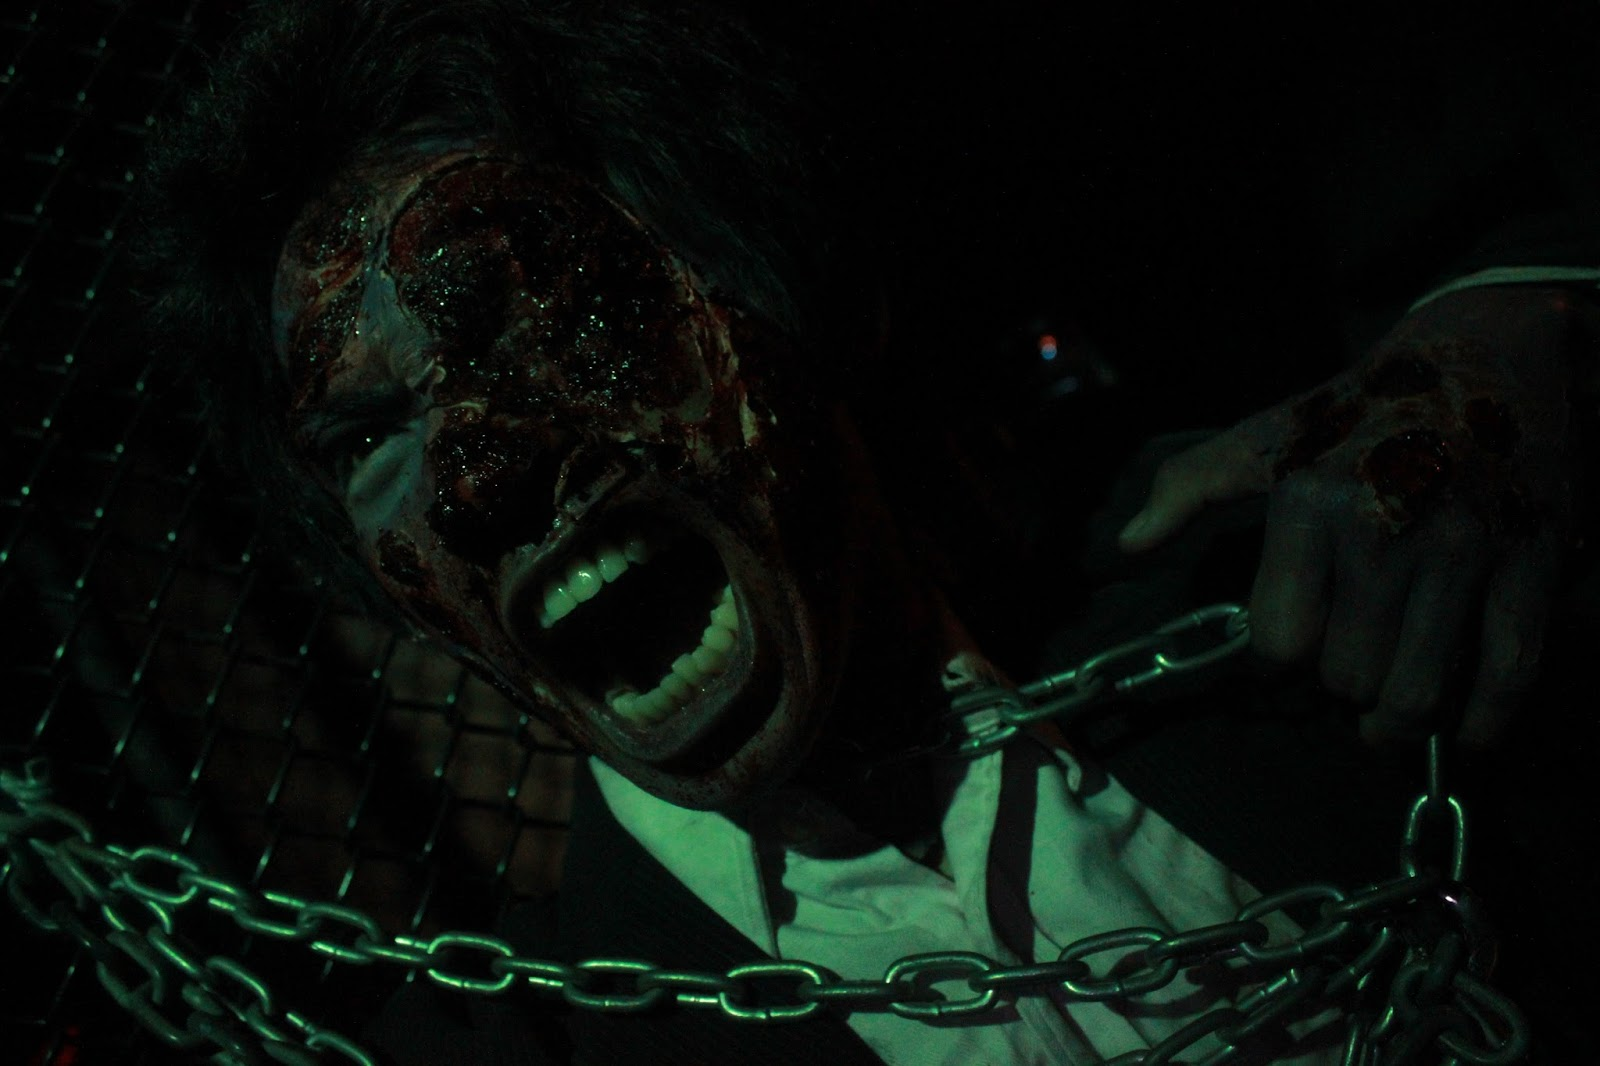 Feel the fear as Sunway Lagoon brings back Nights of Fright 5